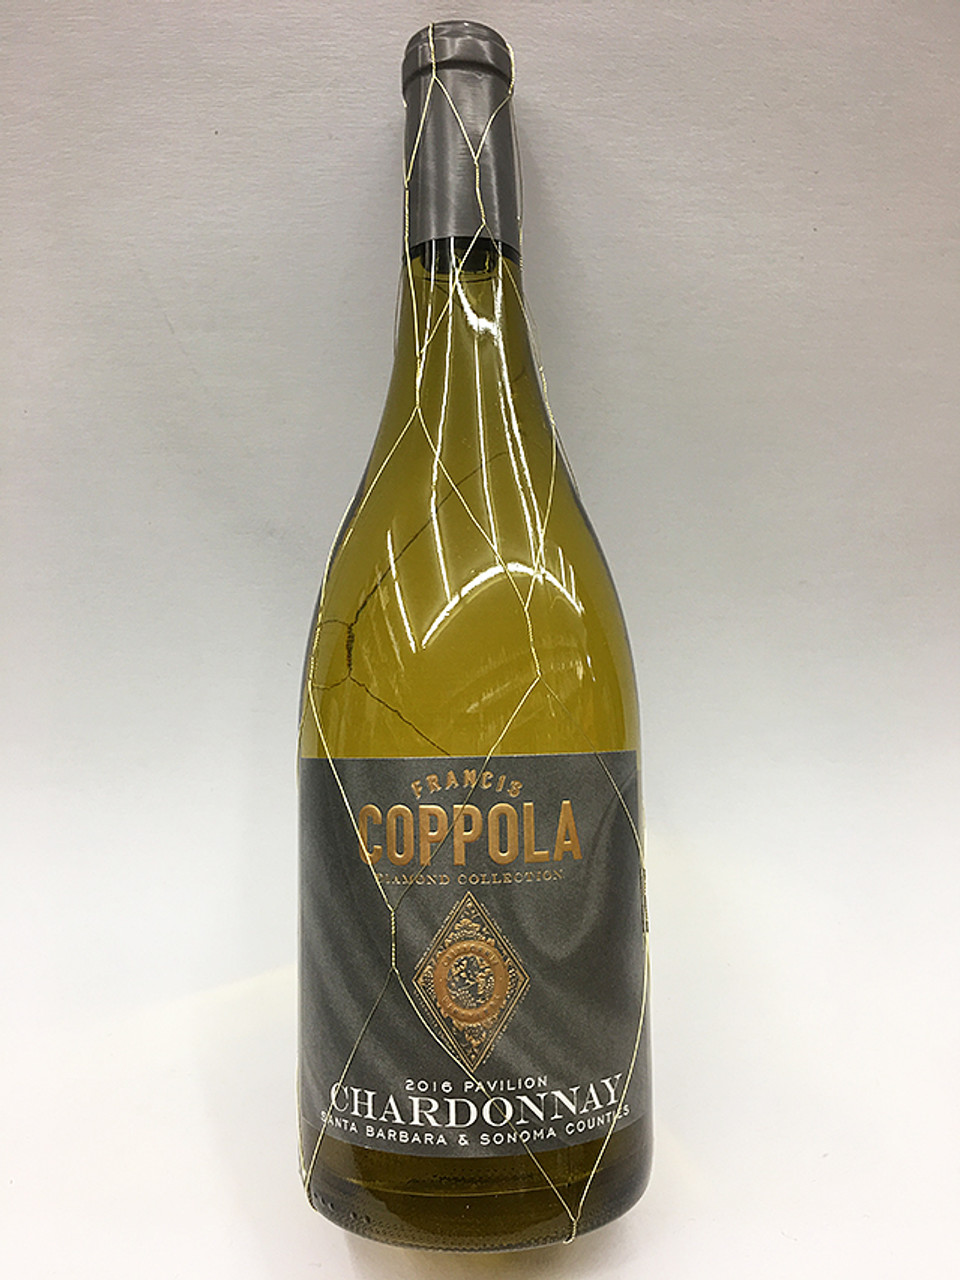 It's just a picture of Divine Francis Coppola Gold Label Chardonnay